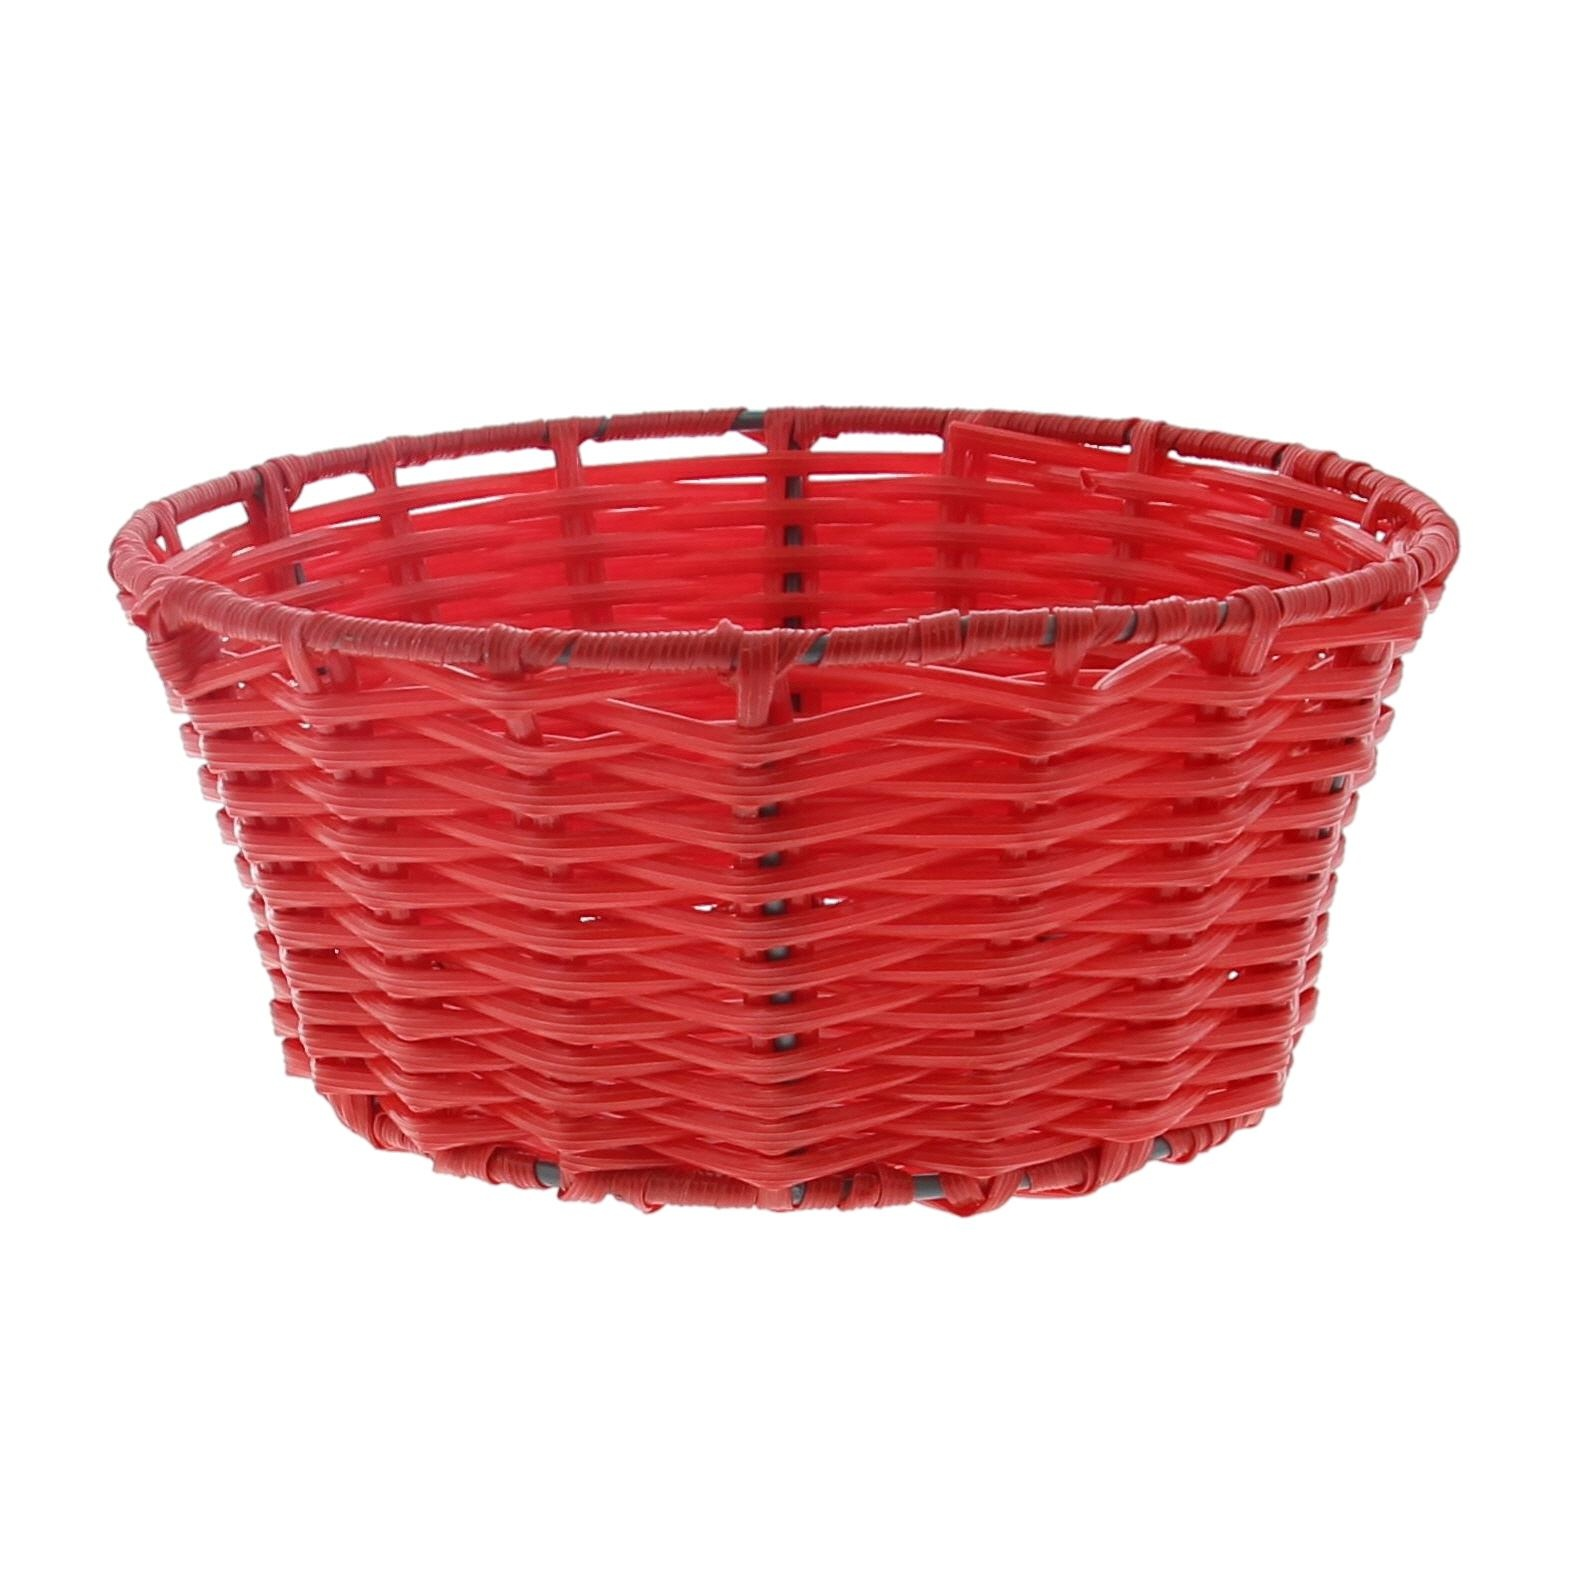 Plastic basket round - red  - 6 pieces